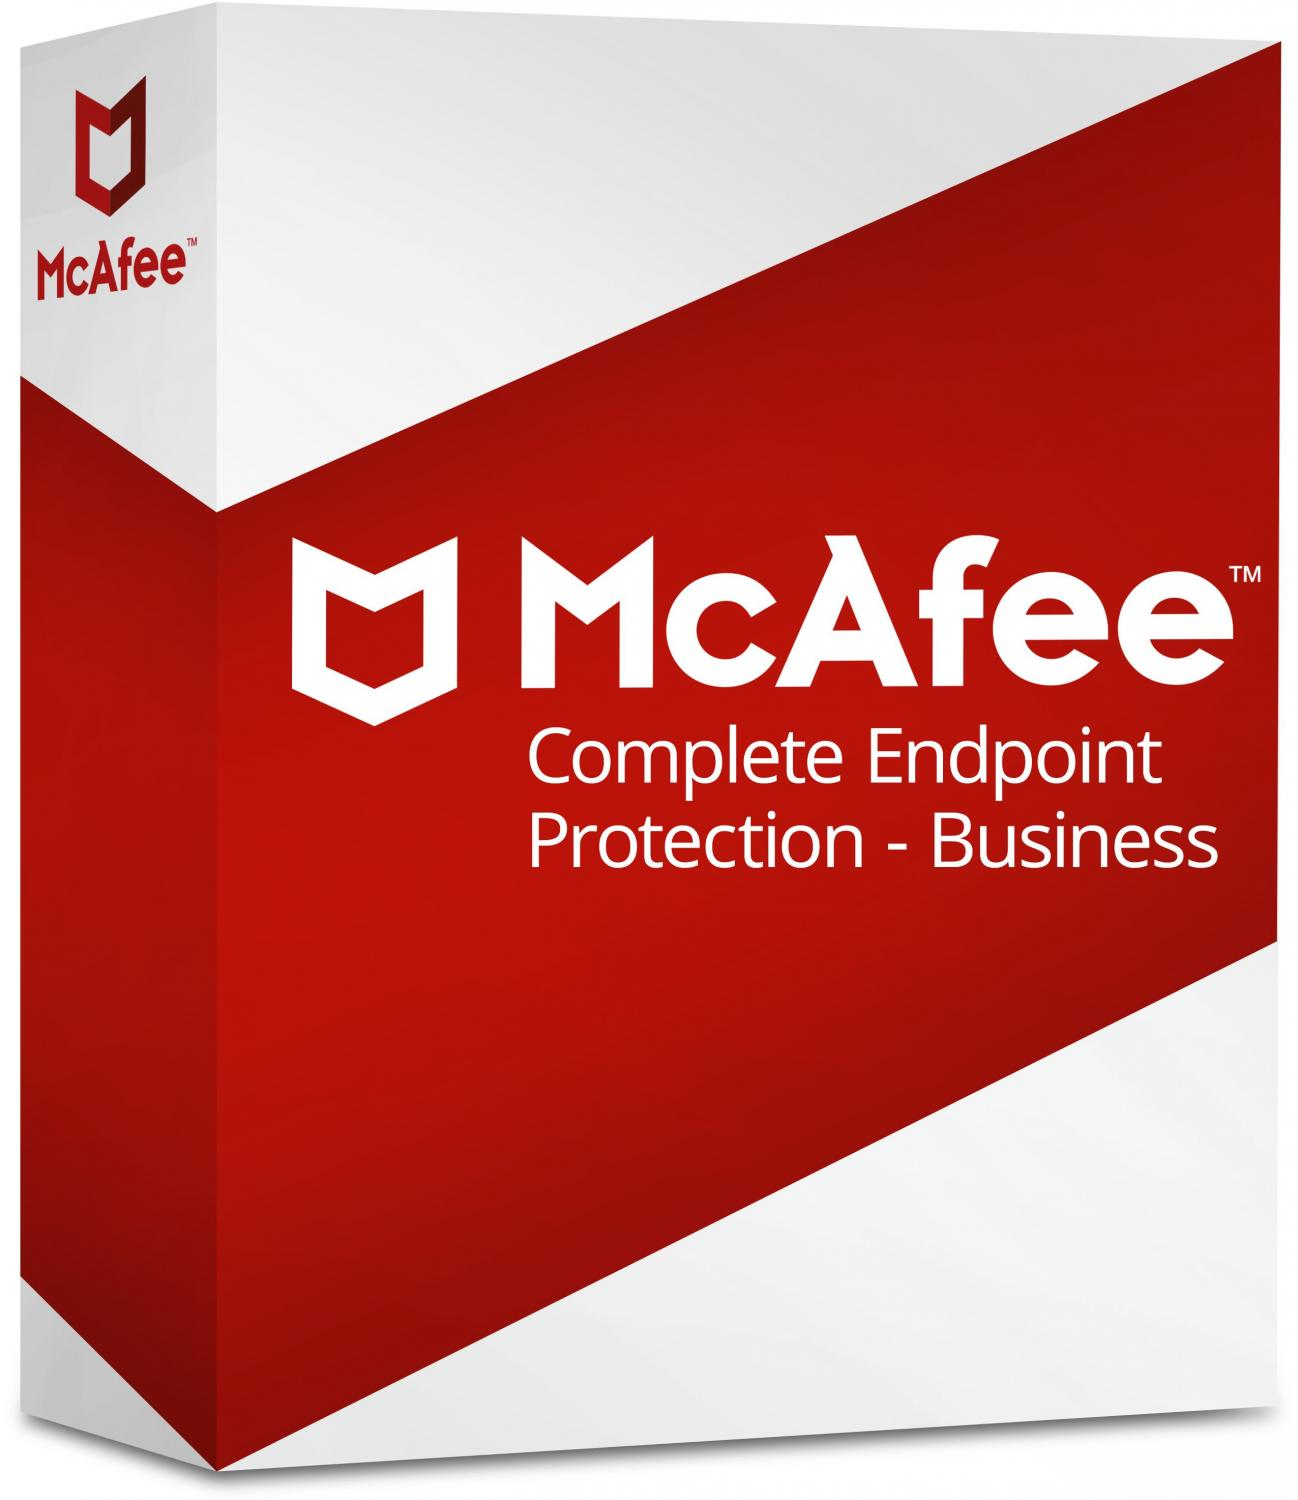 McAfee Complete Endpoint Protection - Bus P:3 GL[P+]ComUPGD A 11-25 ProtectPLUS Perpetual License with 3Year Gold Software Support